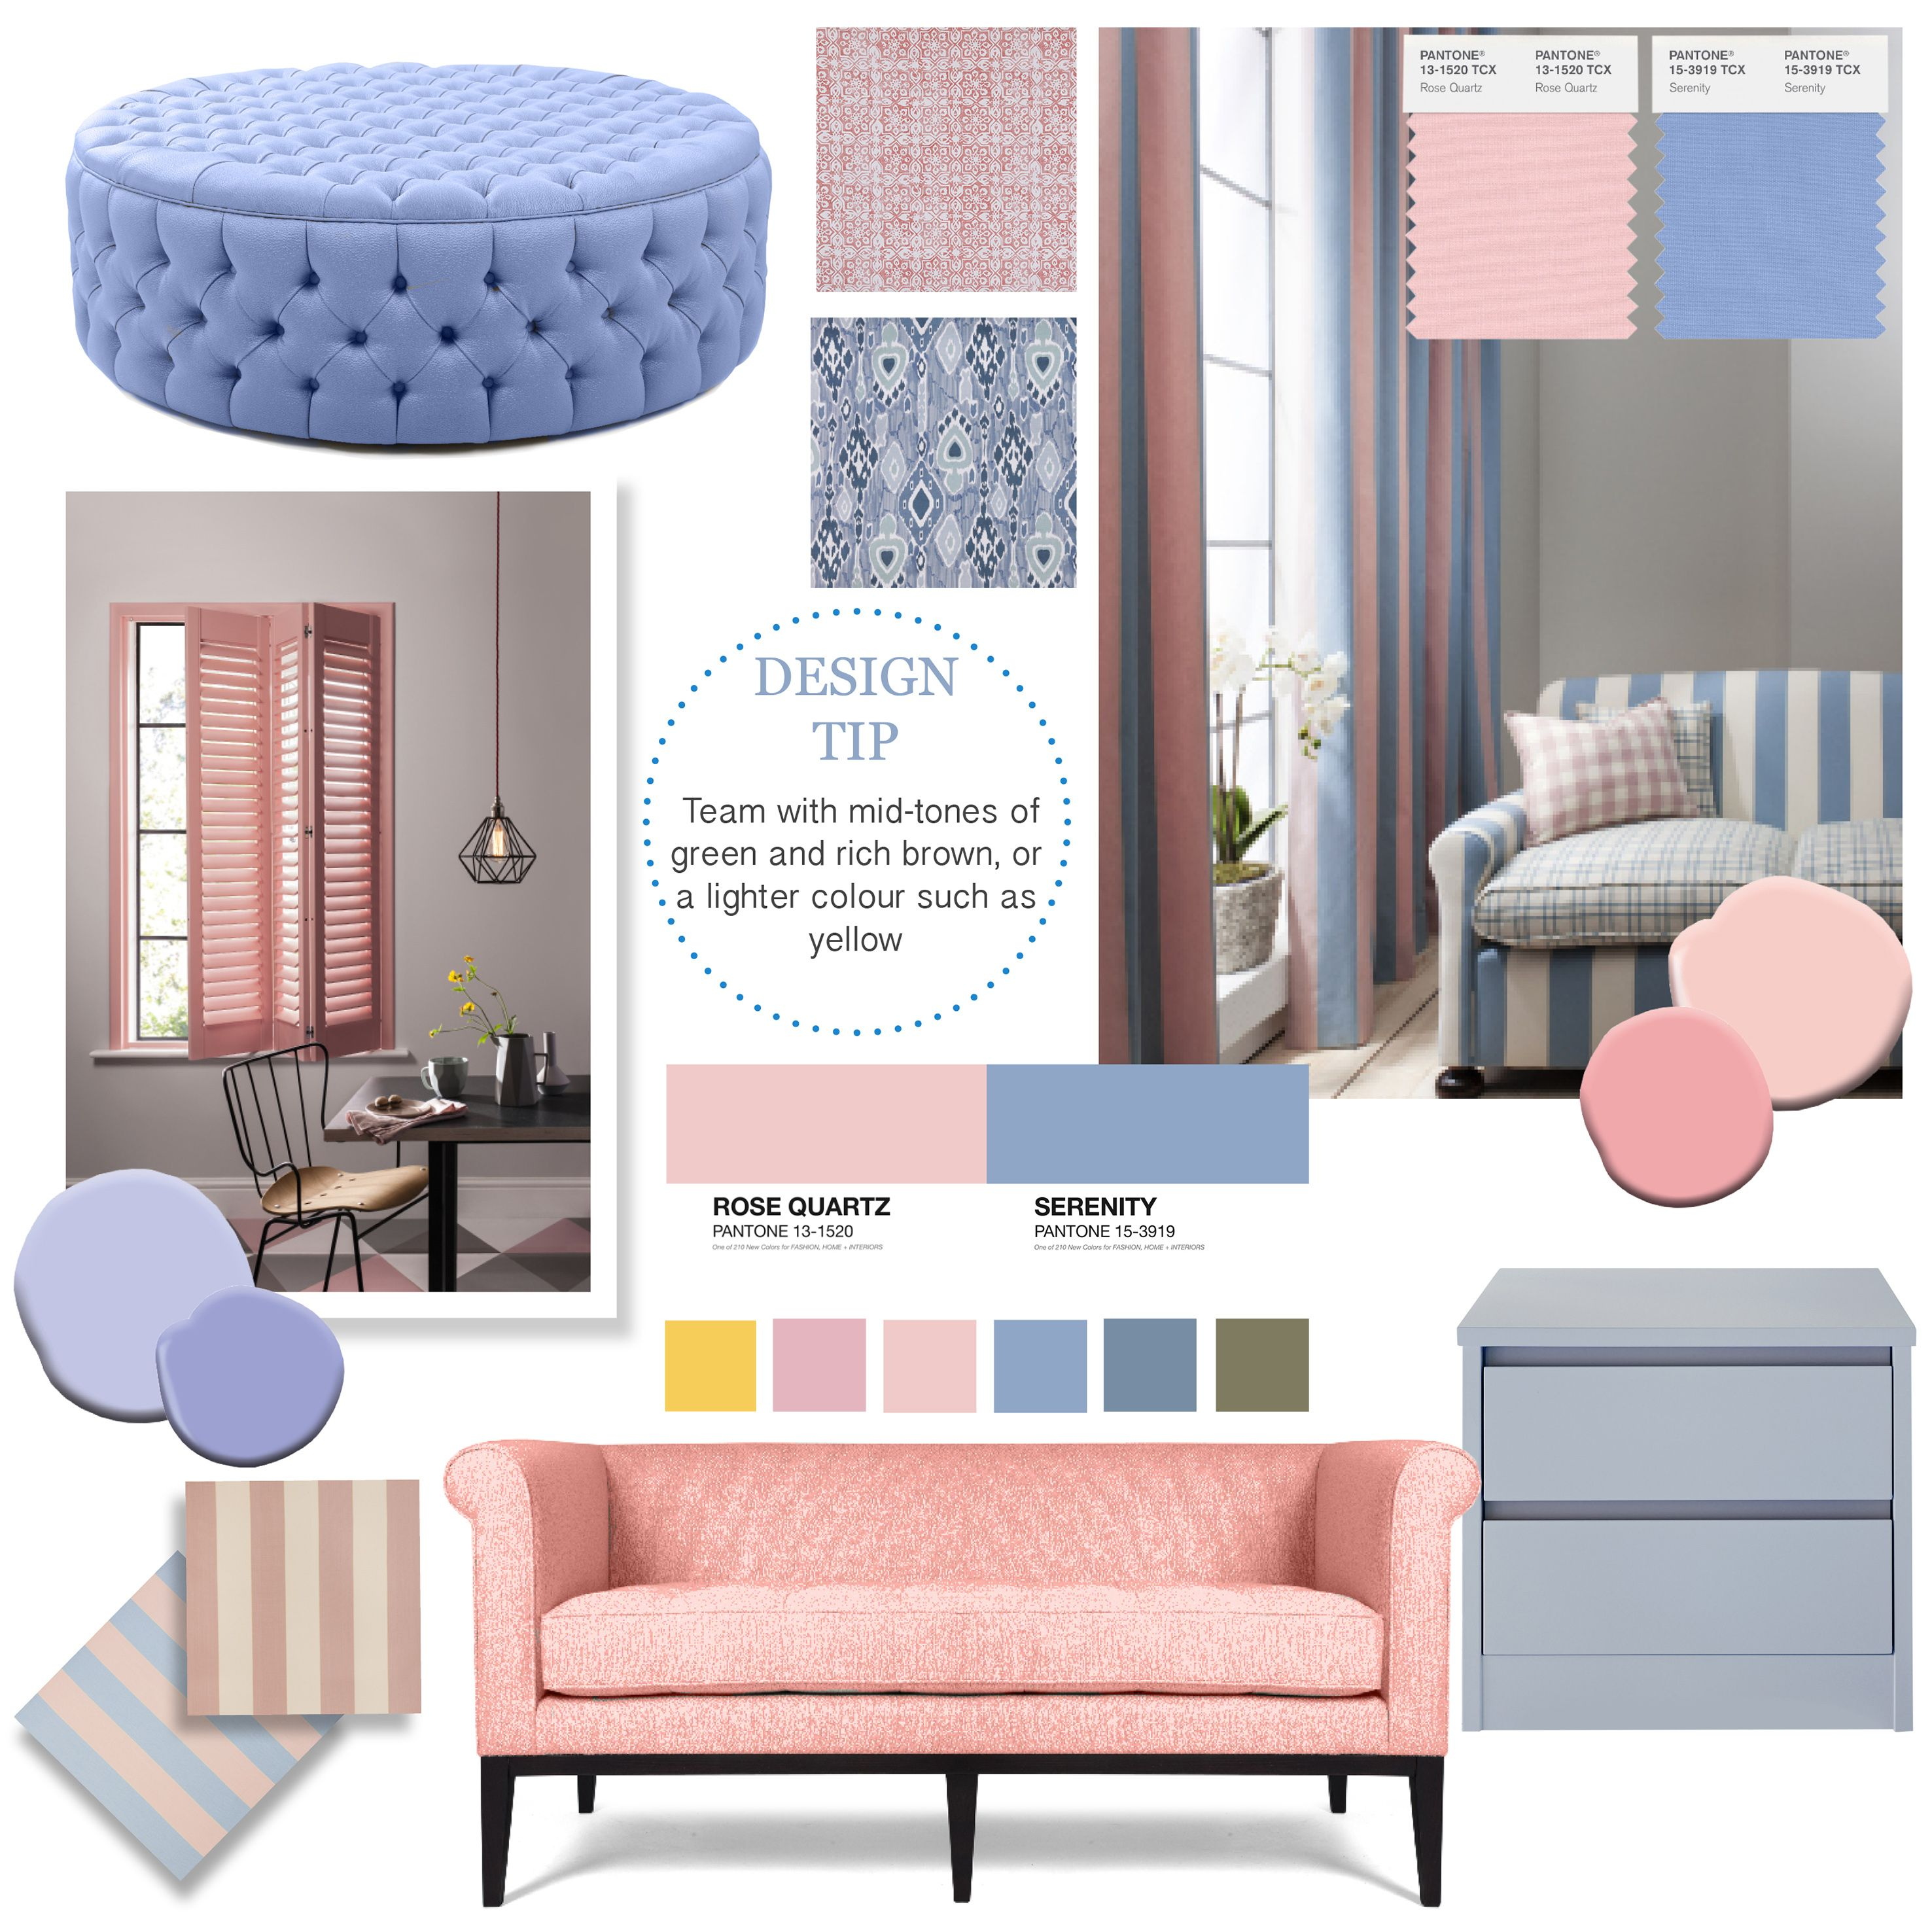 Introducing Pantone S Colour S Of The Year Rose Quartz And Serenity We Ve Written A Blog All About The Colours Rose Quartz Serenity House Interior Interior